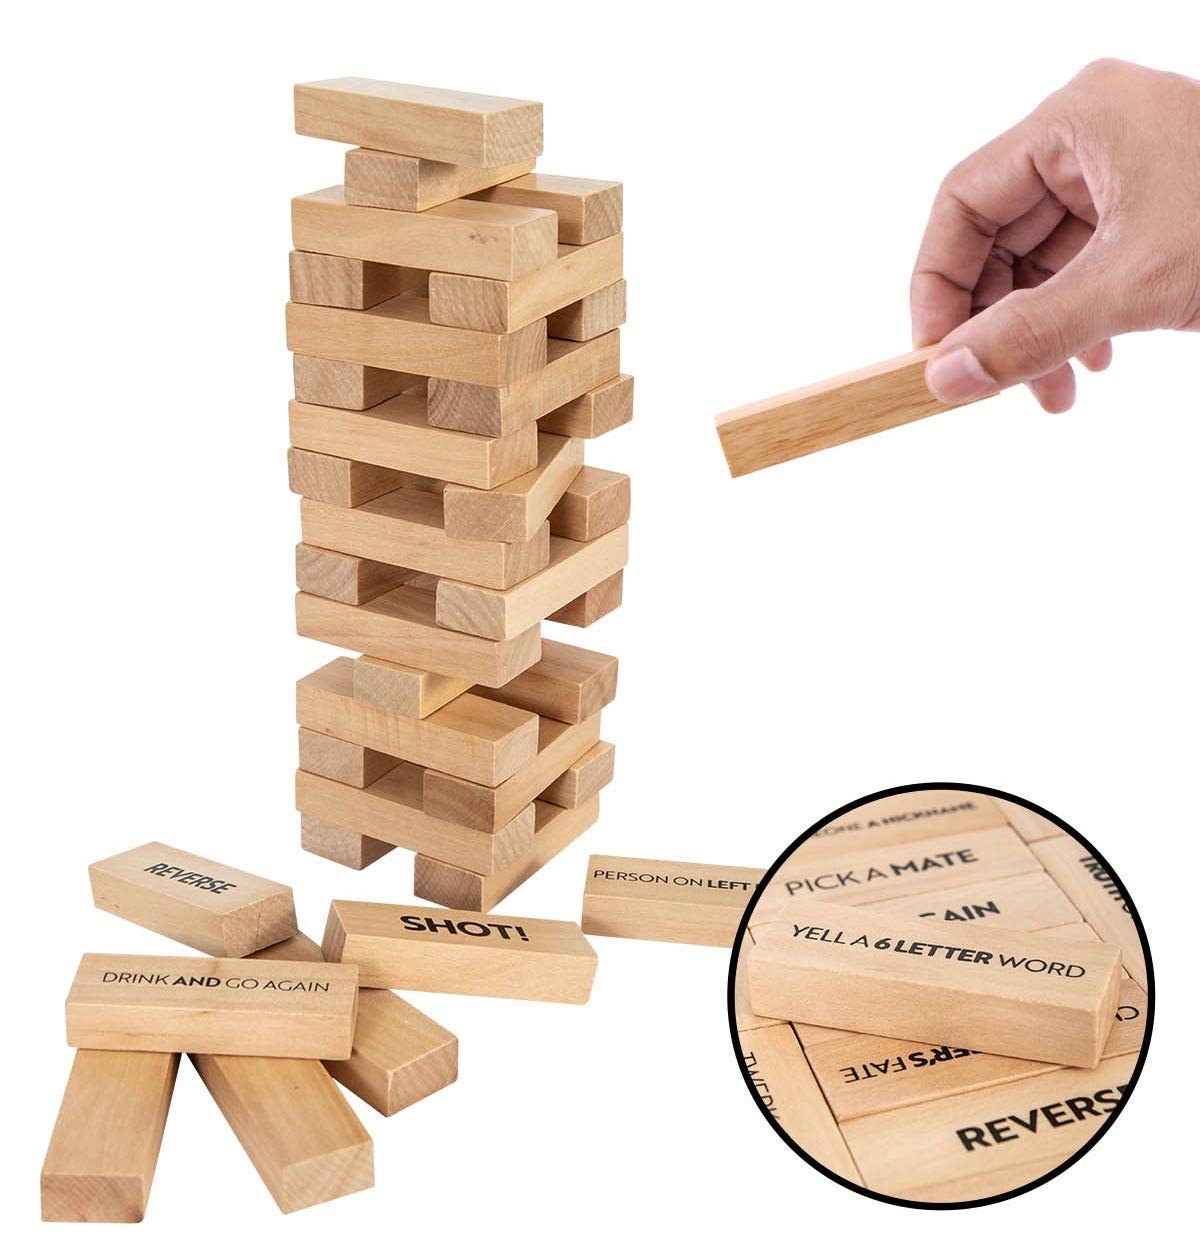 Buzzed Blocks Adult Drinking Game - 54 Blocks w/Drinking Commands and Games On 30 Of Them - Make Own Rules on Remaining Blocks | Funny Entertaining Party Game | Perfect Novelty Gift